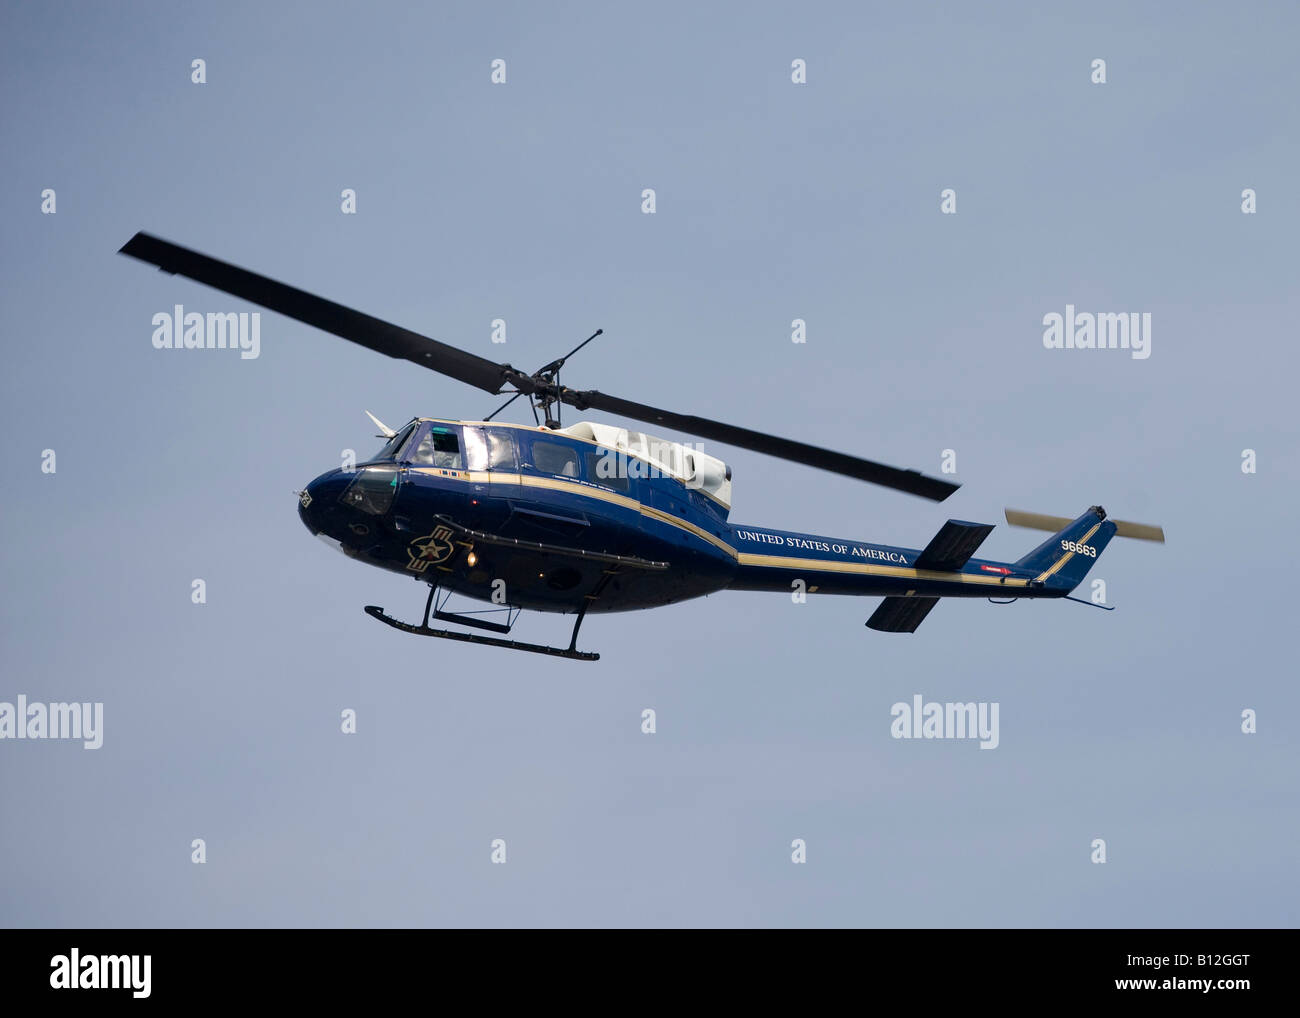 A dark blue United States government helicopter flies over Charlottesville Virginia on an overcast day on April - Stock Image